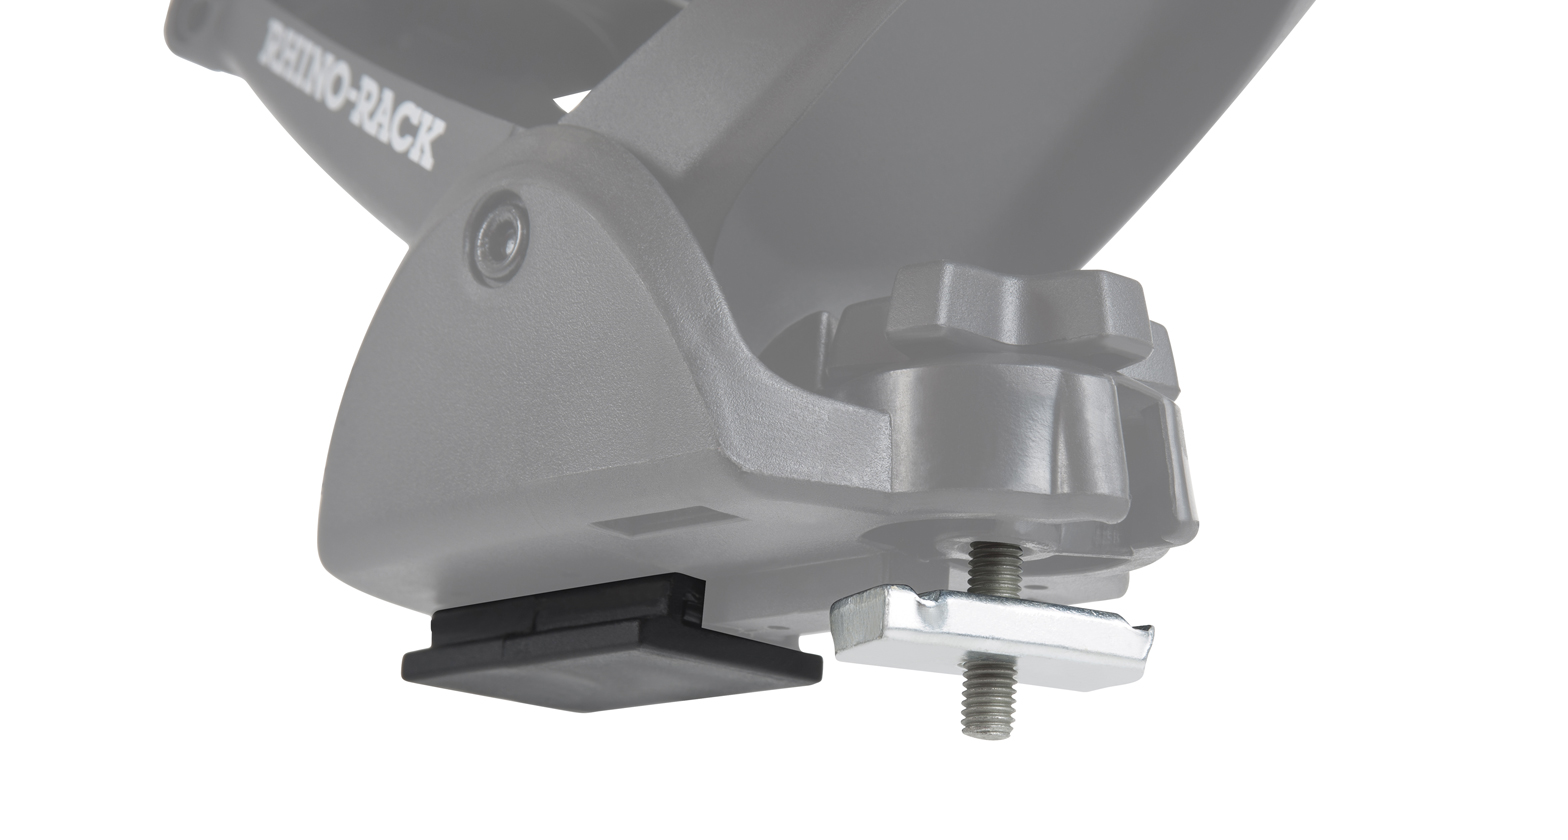 Hd Fk2 Kayak Carrier Fitting Kit For Use With Nautic